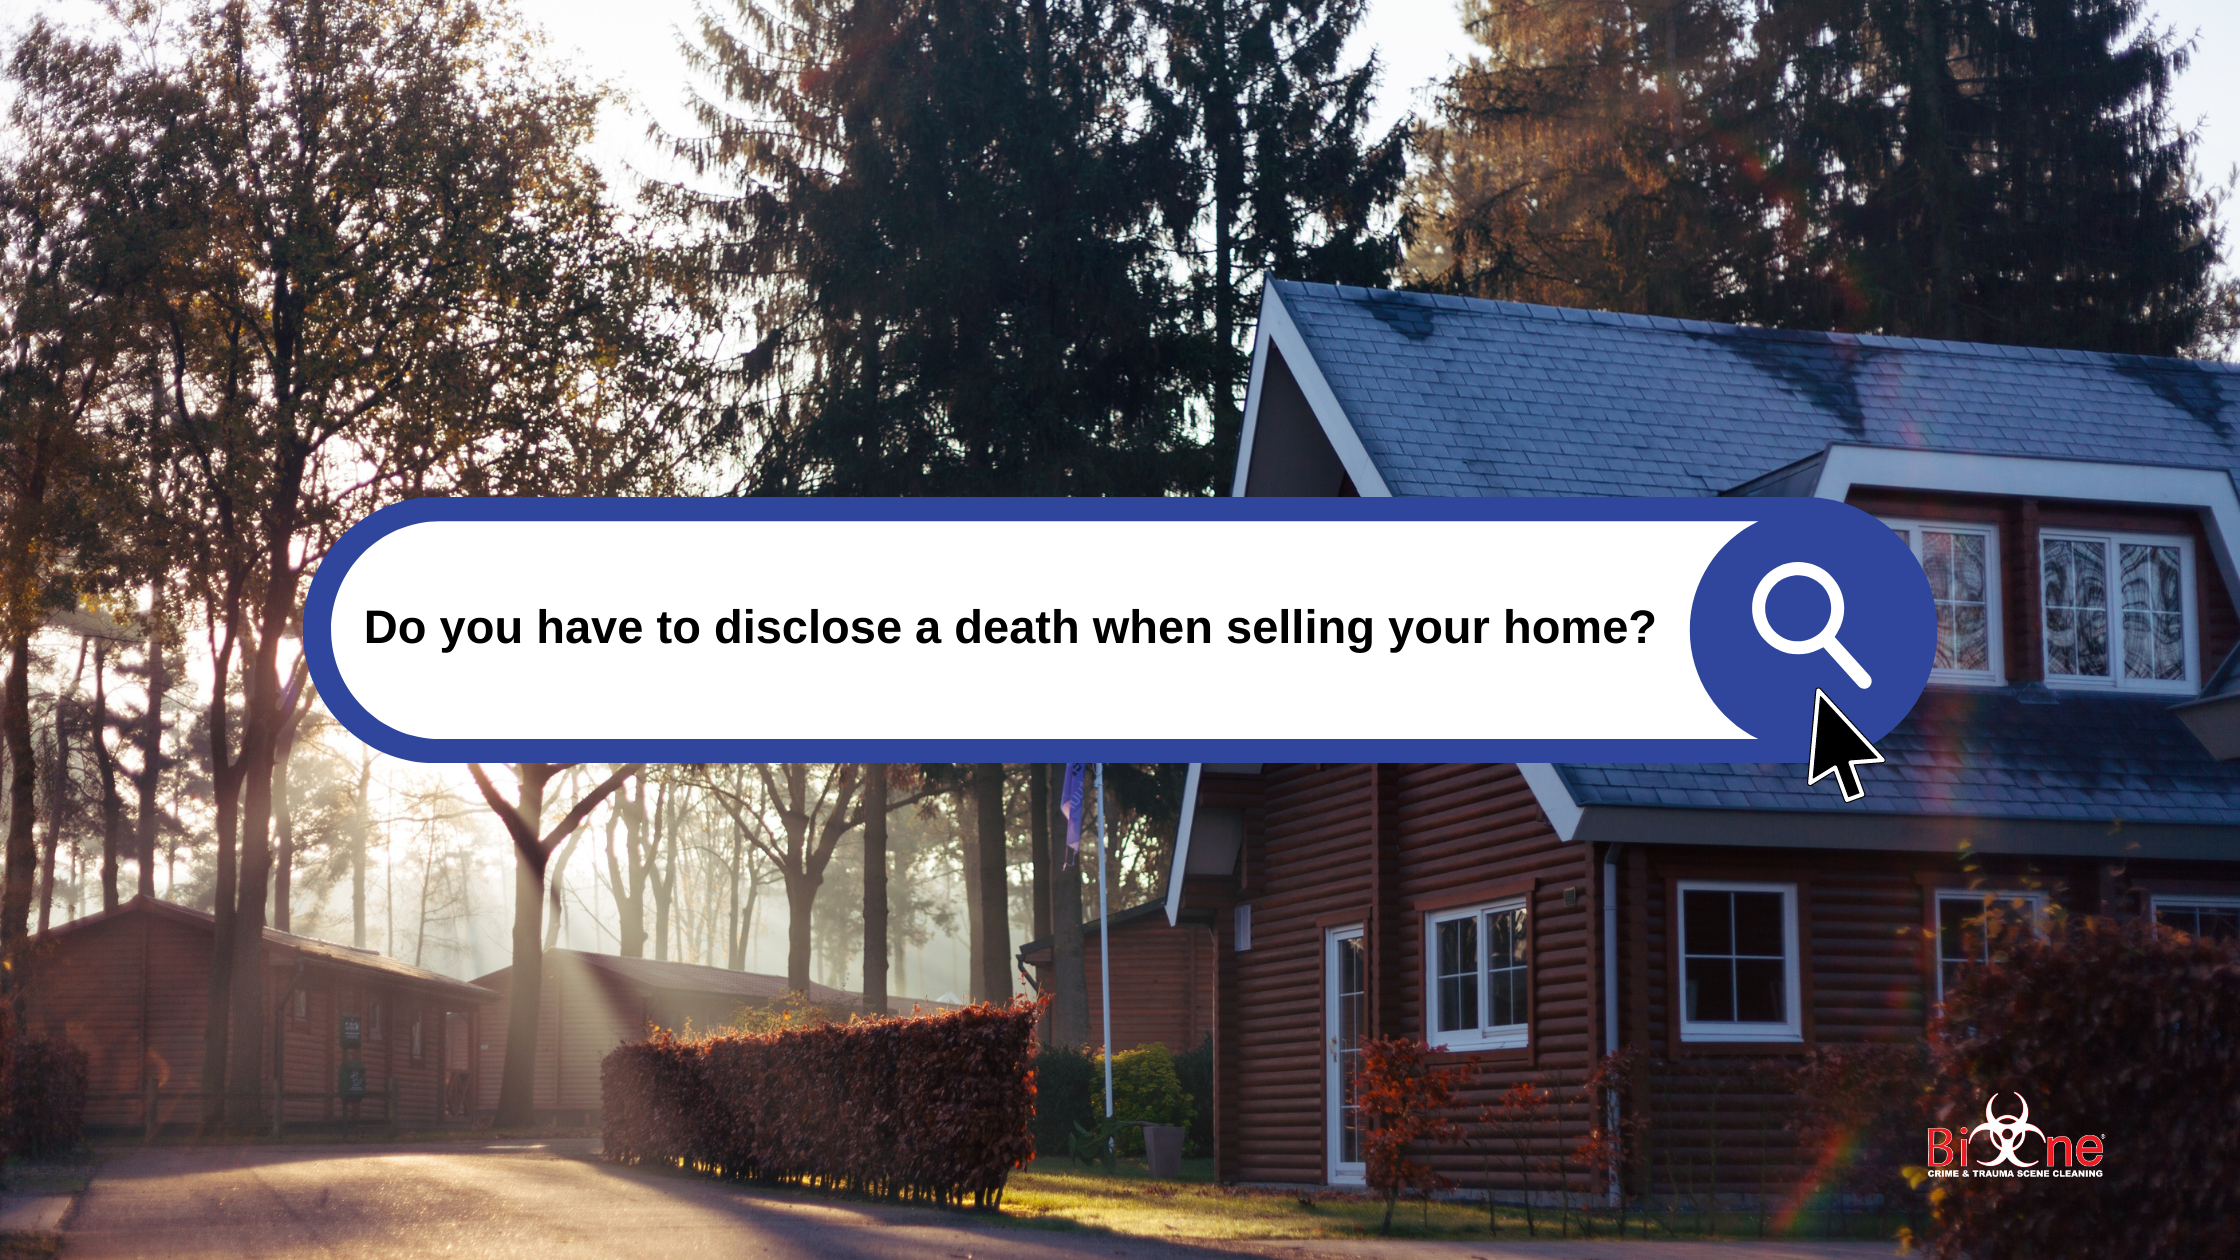 Do you Have to Disclose a Death When Selling Your Home in California?